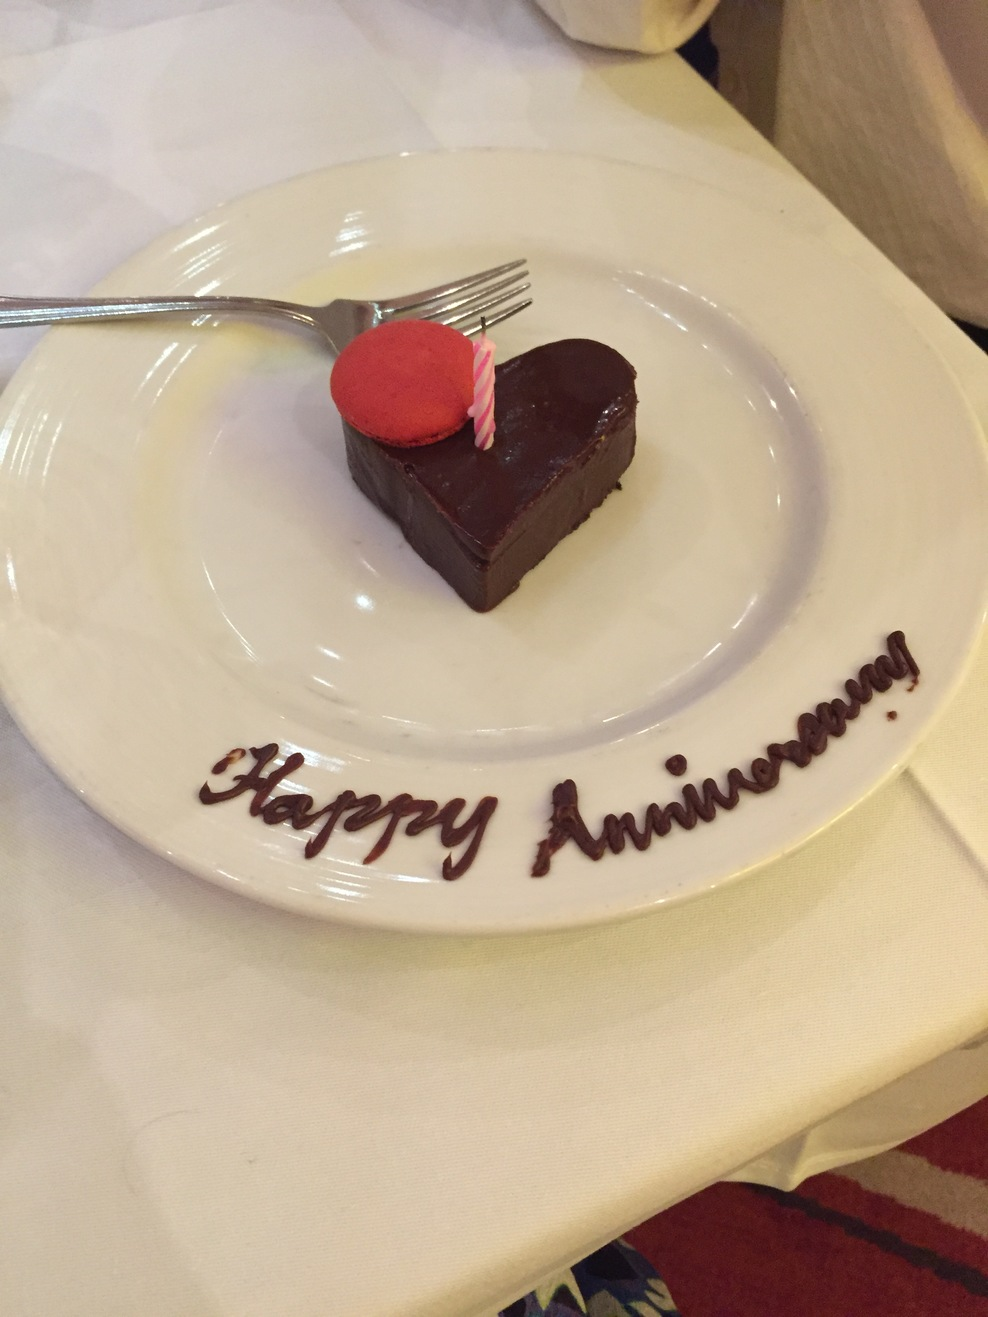 We celebrated our anniversary on the ship and our waiter brought us a cake!